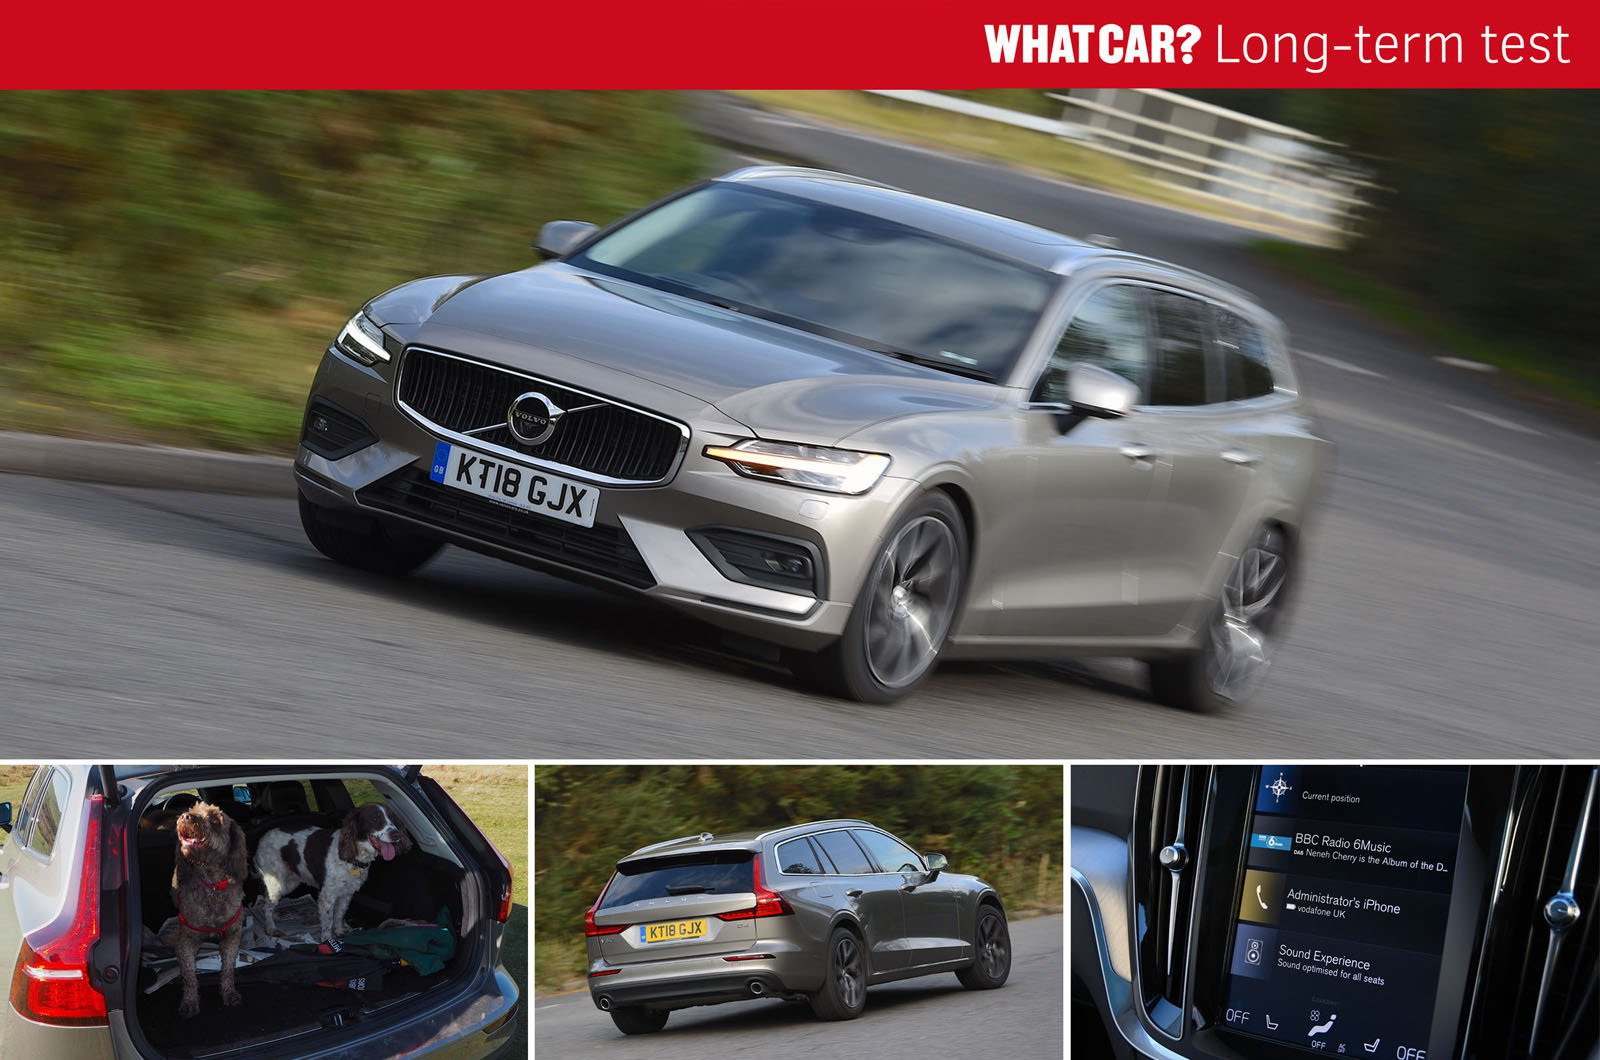 Volvo V60 long-term test review